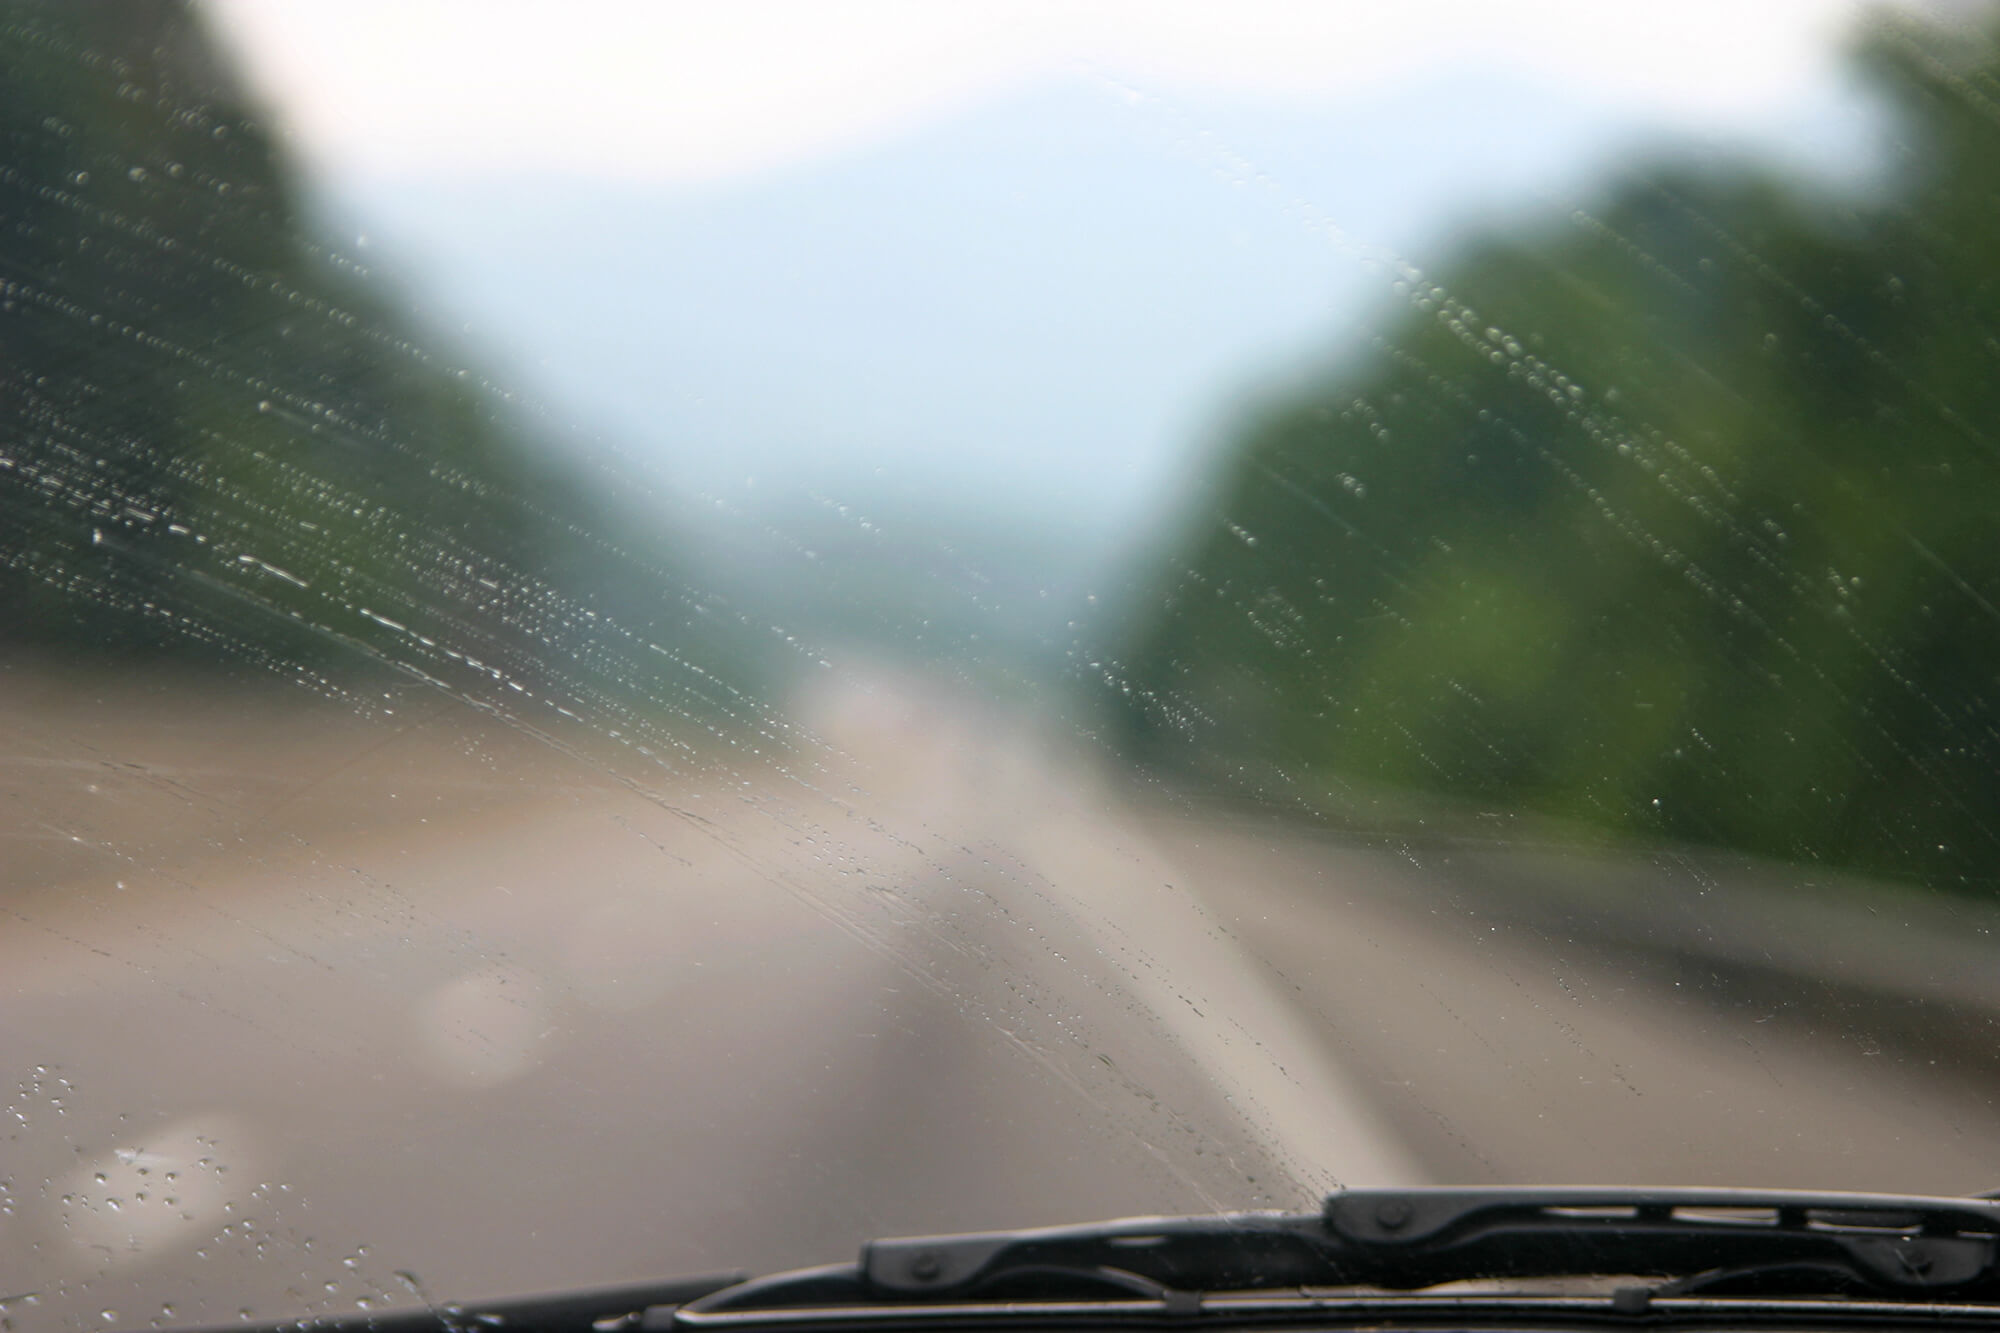 Clearest Indication Its Time to Replace Your Windscreen | Instant Windscreens